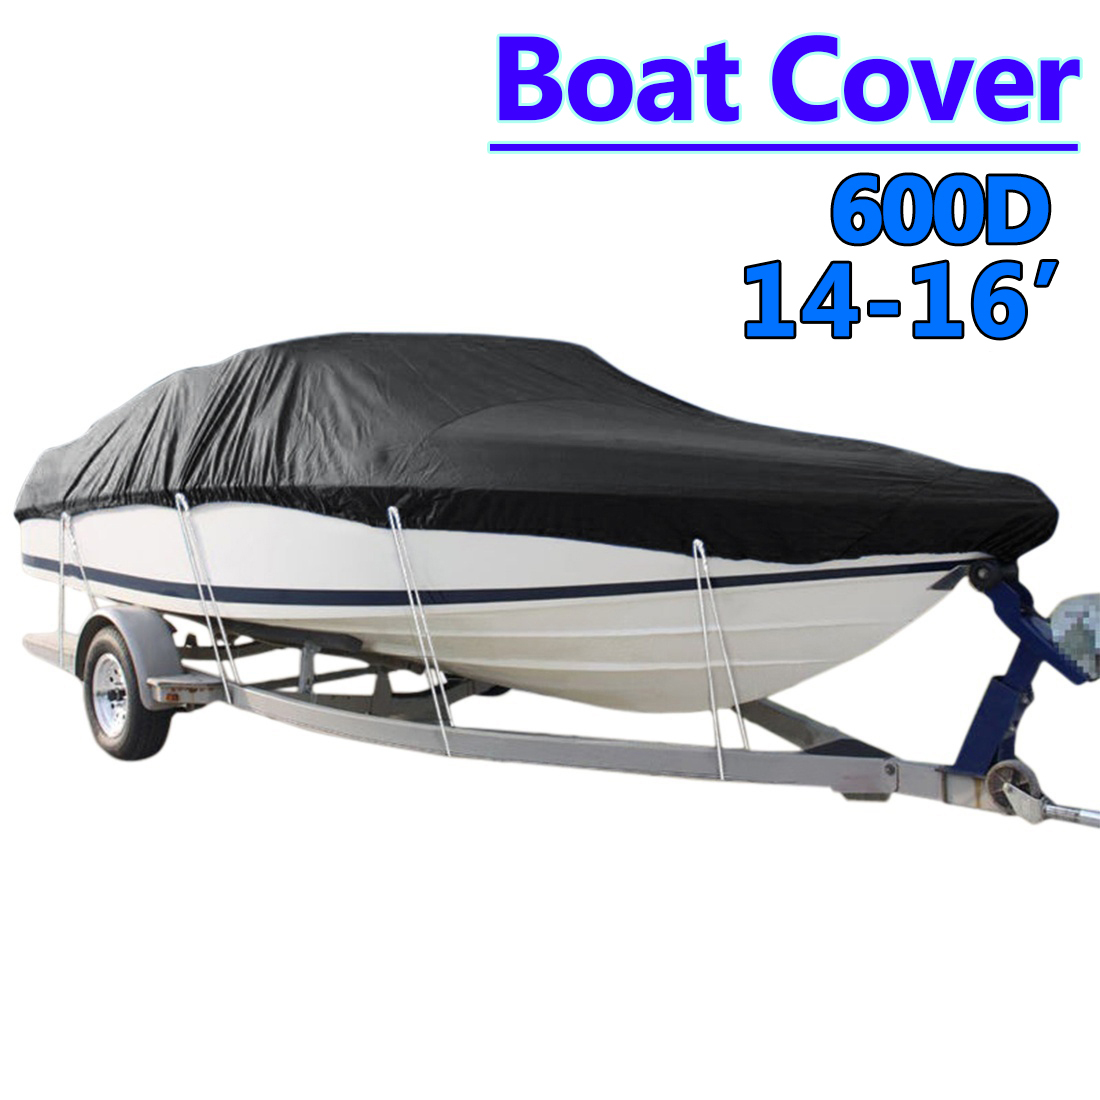 Heavy Duty 14-16ft 600D Beam 90inch Trailerable Marine Grade Boat Cover Outdoor Yacht Boat Suit Waterproof UV Protected Black black heavy duty 14 16ft 600d beam 90inch trailerable marine grade boat cover for yacht boat waterproof anti uv boat accessories